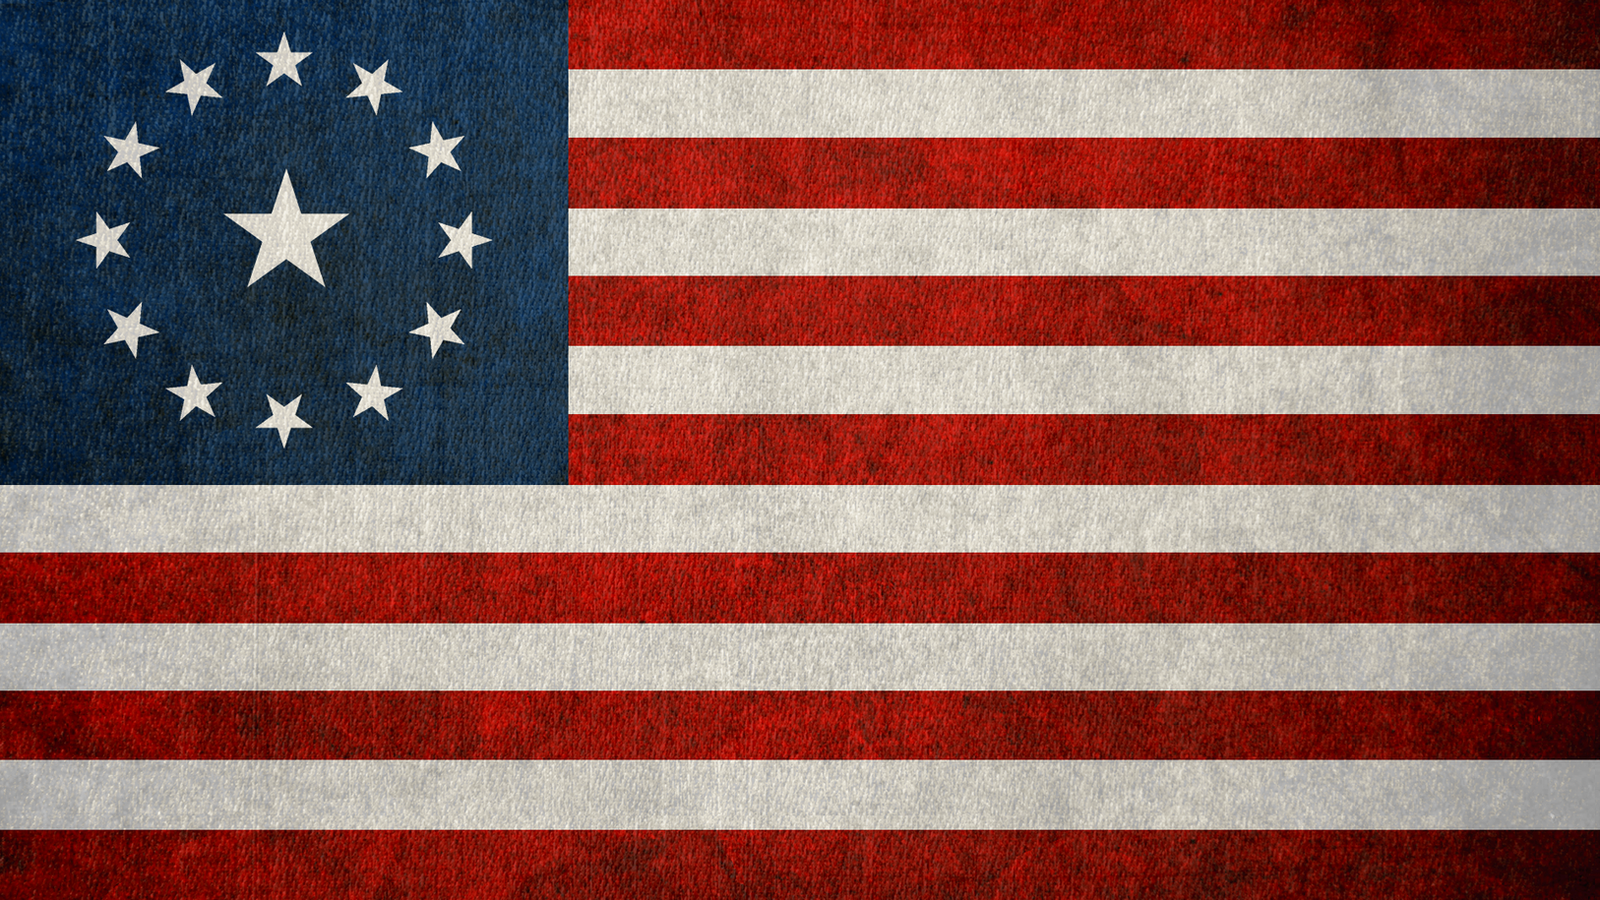 FALLOUT Flag of the United States of America by okiir on DeviantArt